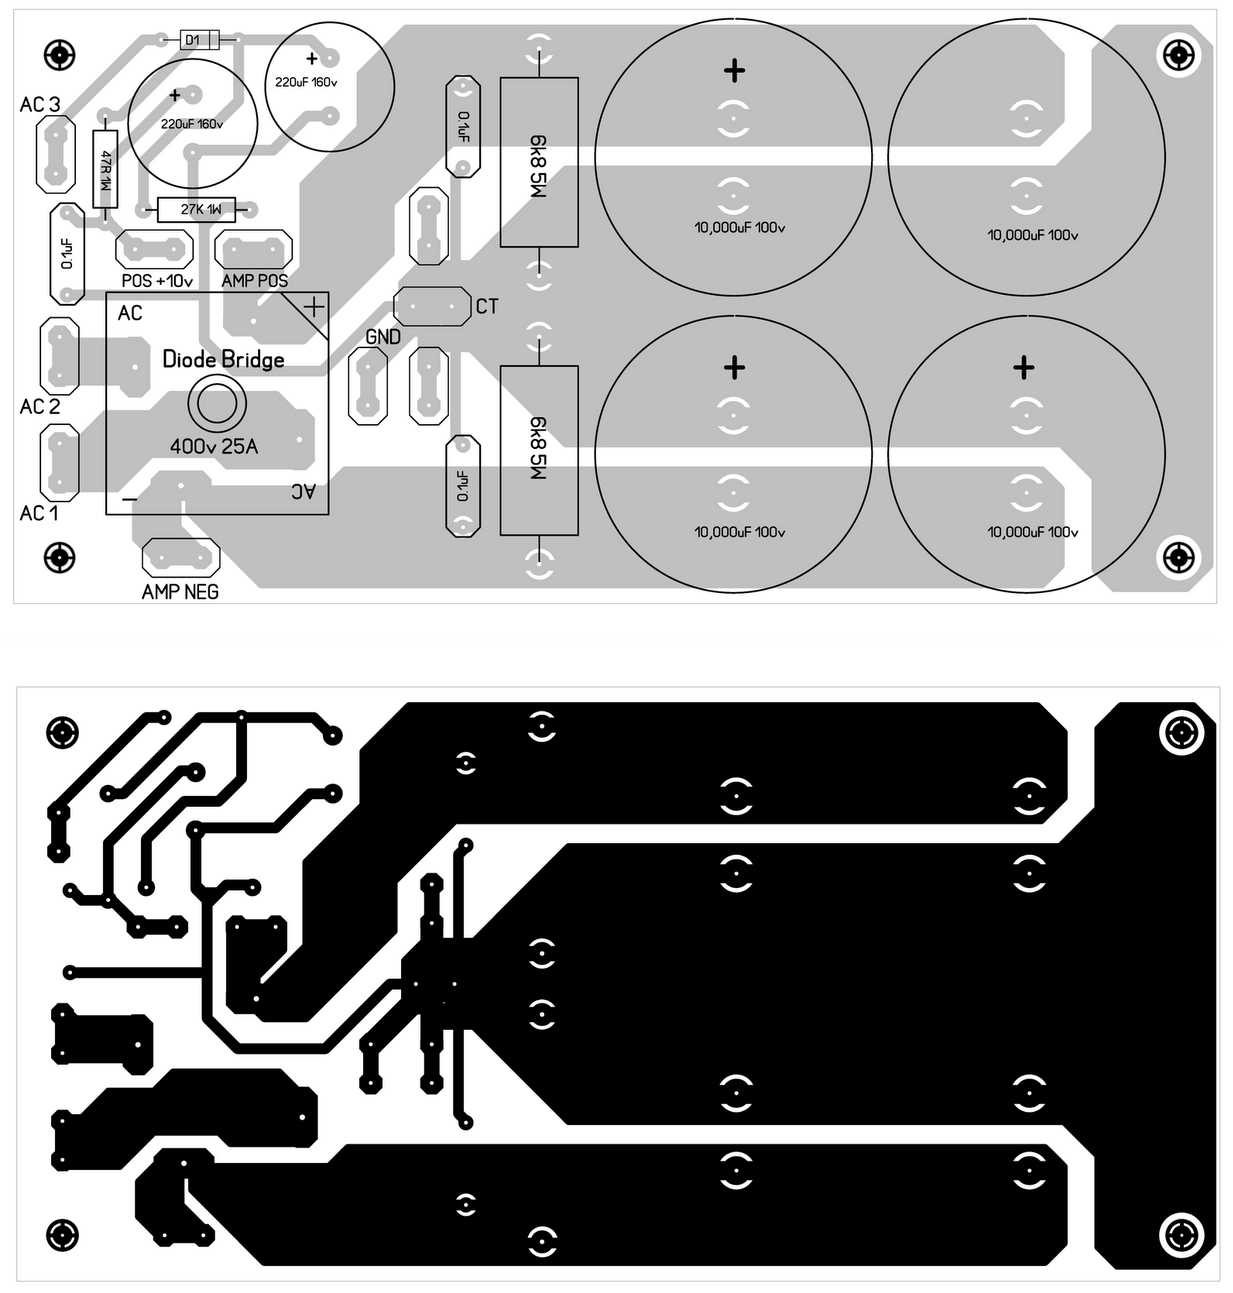 600 watt mosfet power amplifier diagram with pcb gallery of electronic circuit diagram free. Black Bedroom Furniture Sets. Home Design Ideas